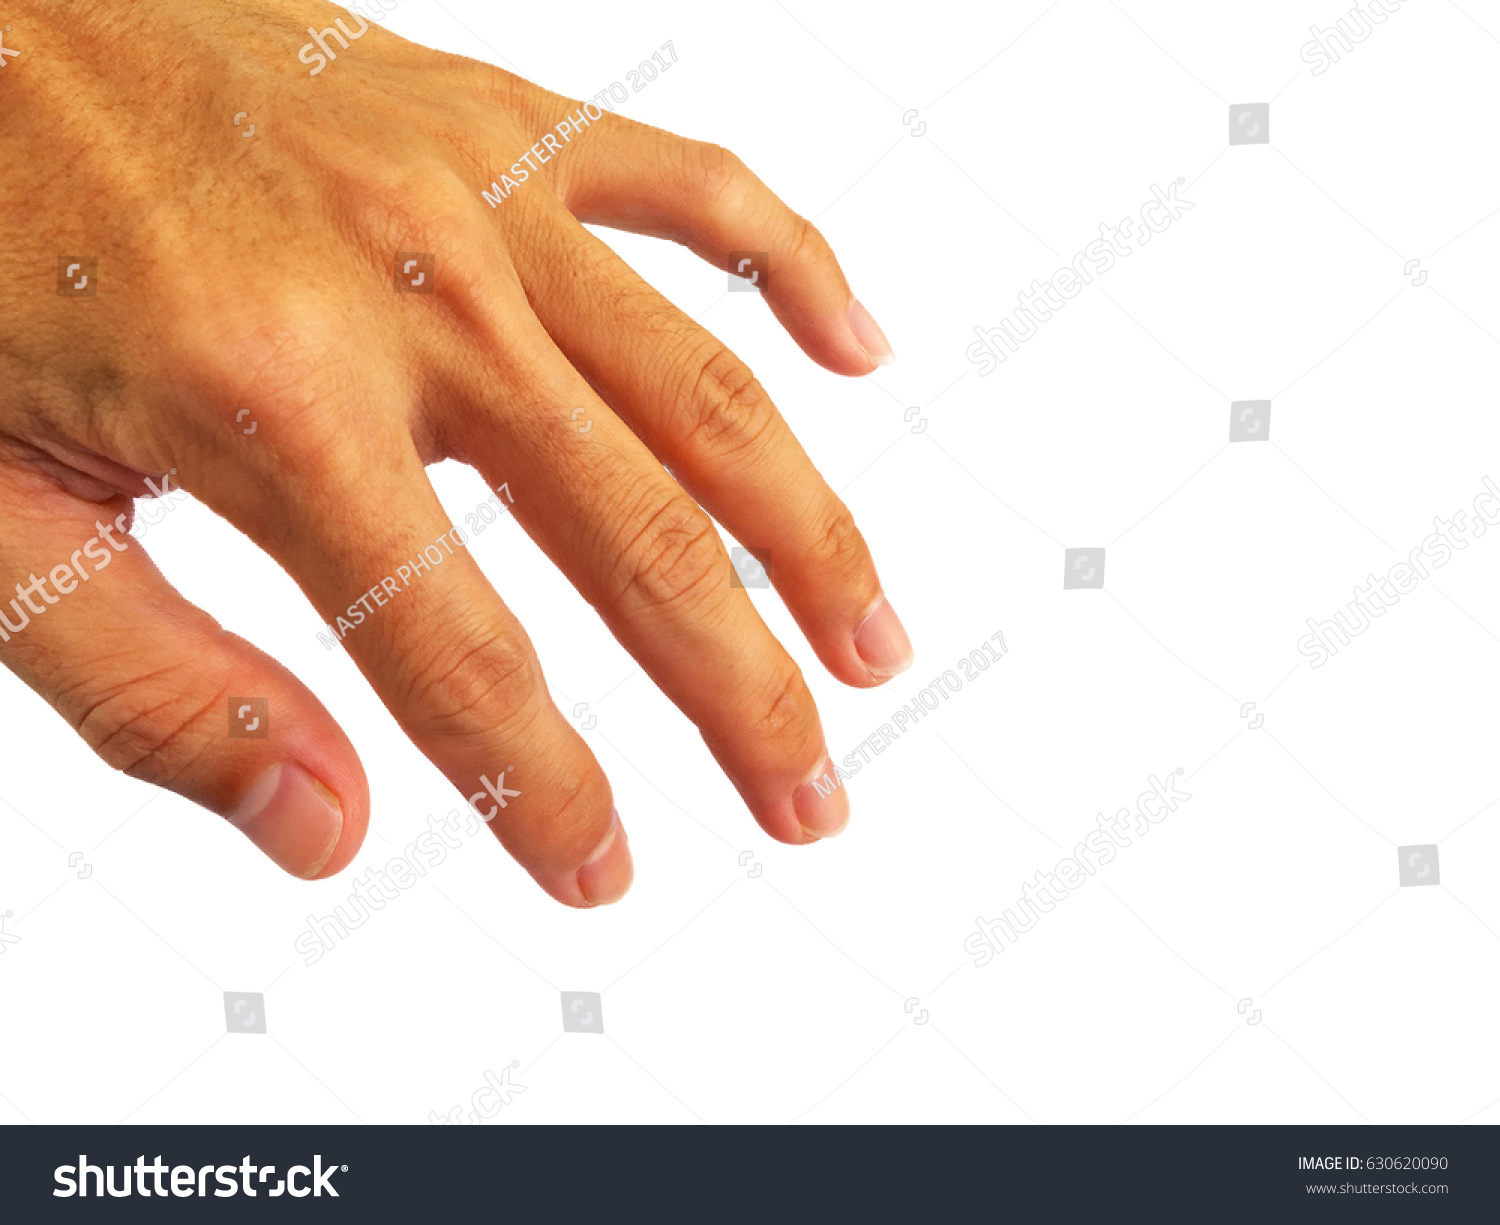 Healthy nails,finger and hand of asian man.